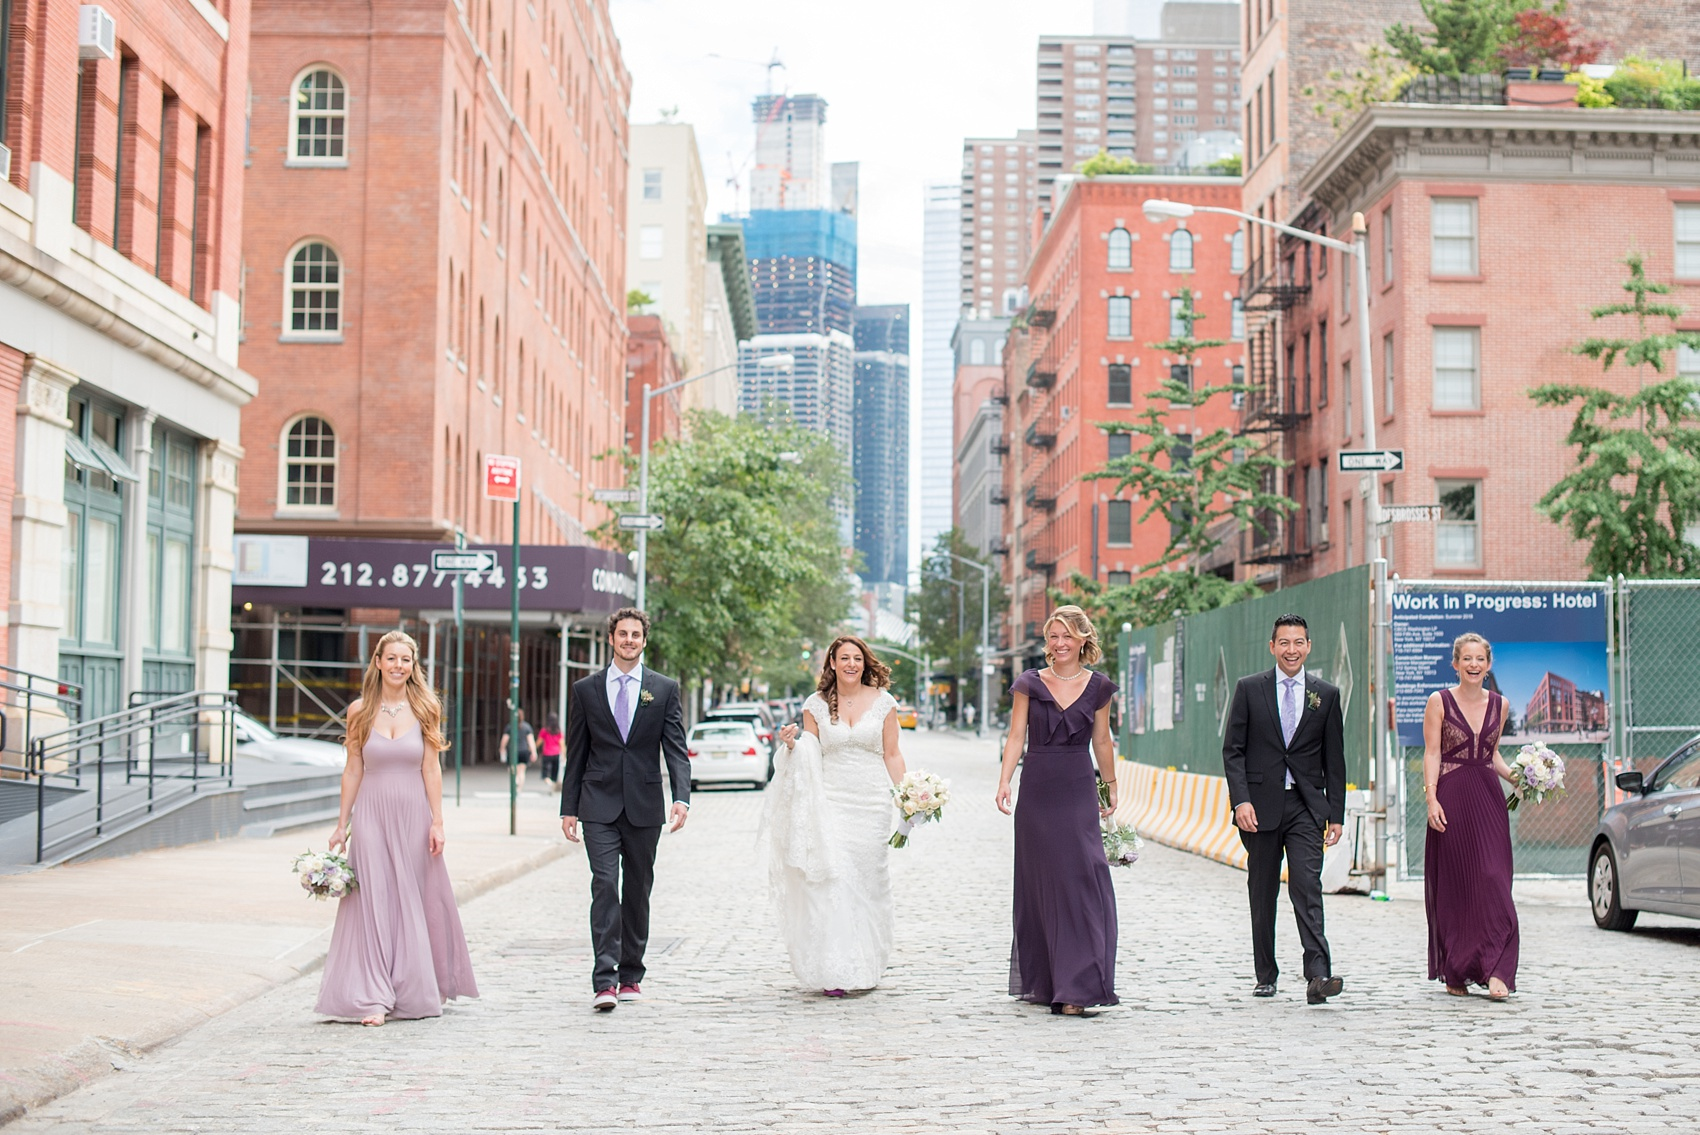 mikkel paige photography photos of a nyc wedding at tribeca rooftop an urban image of